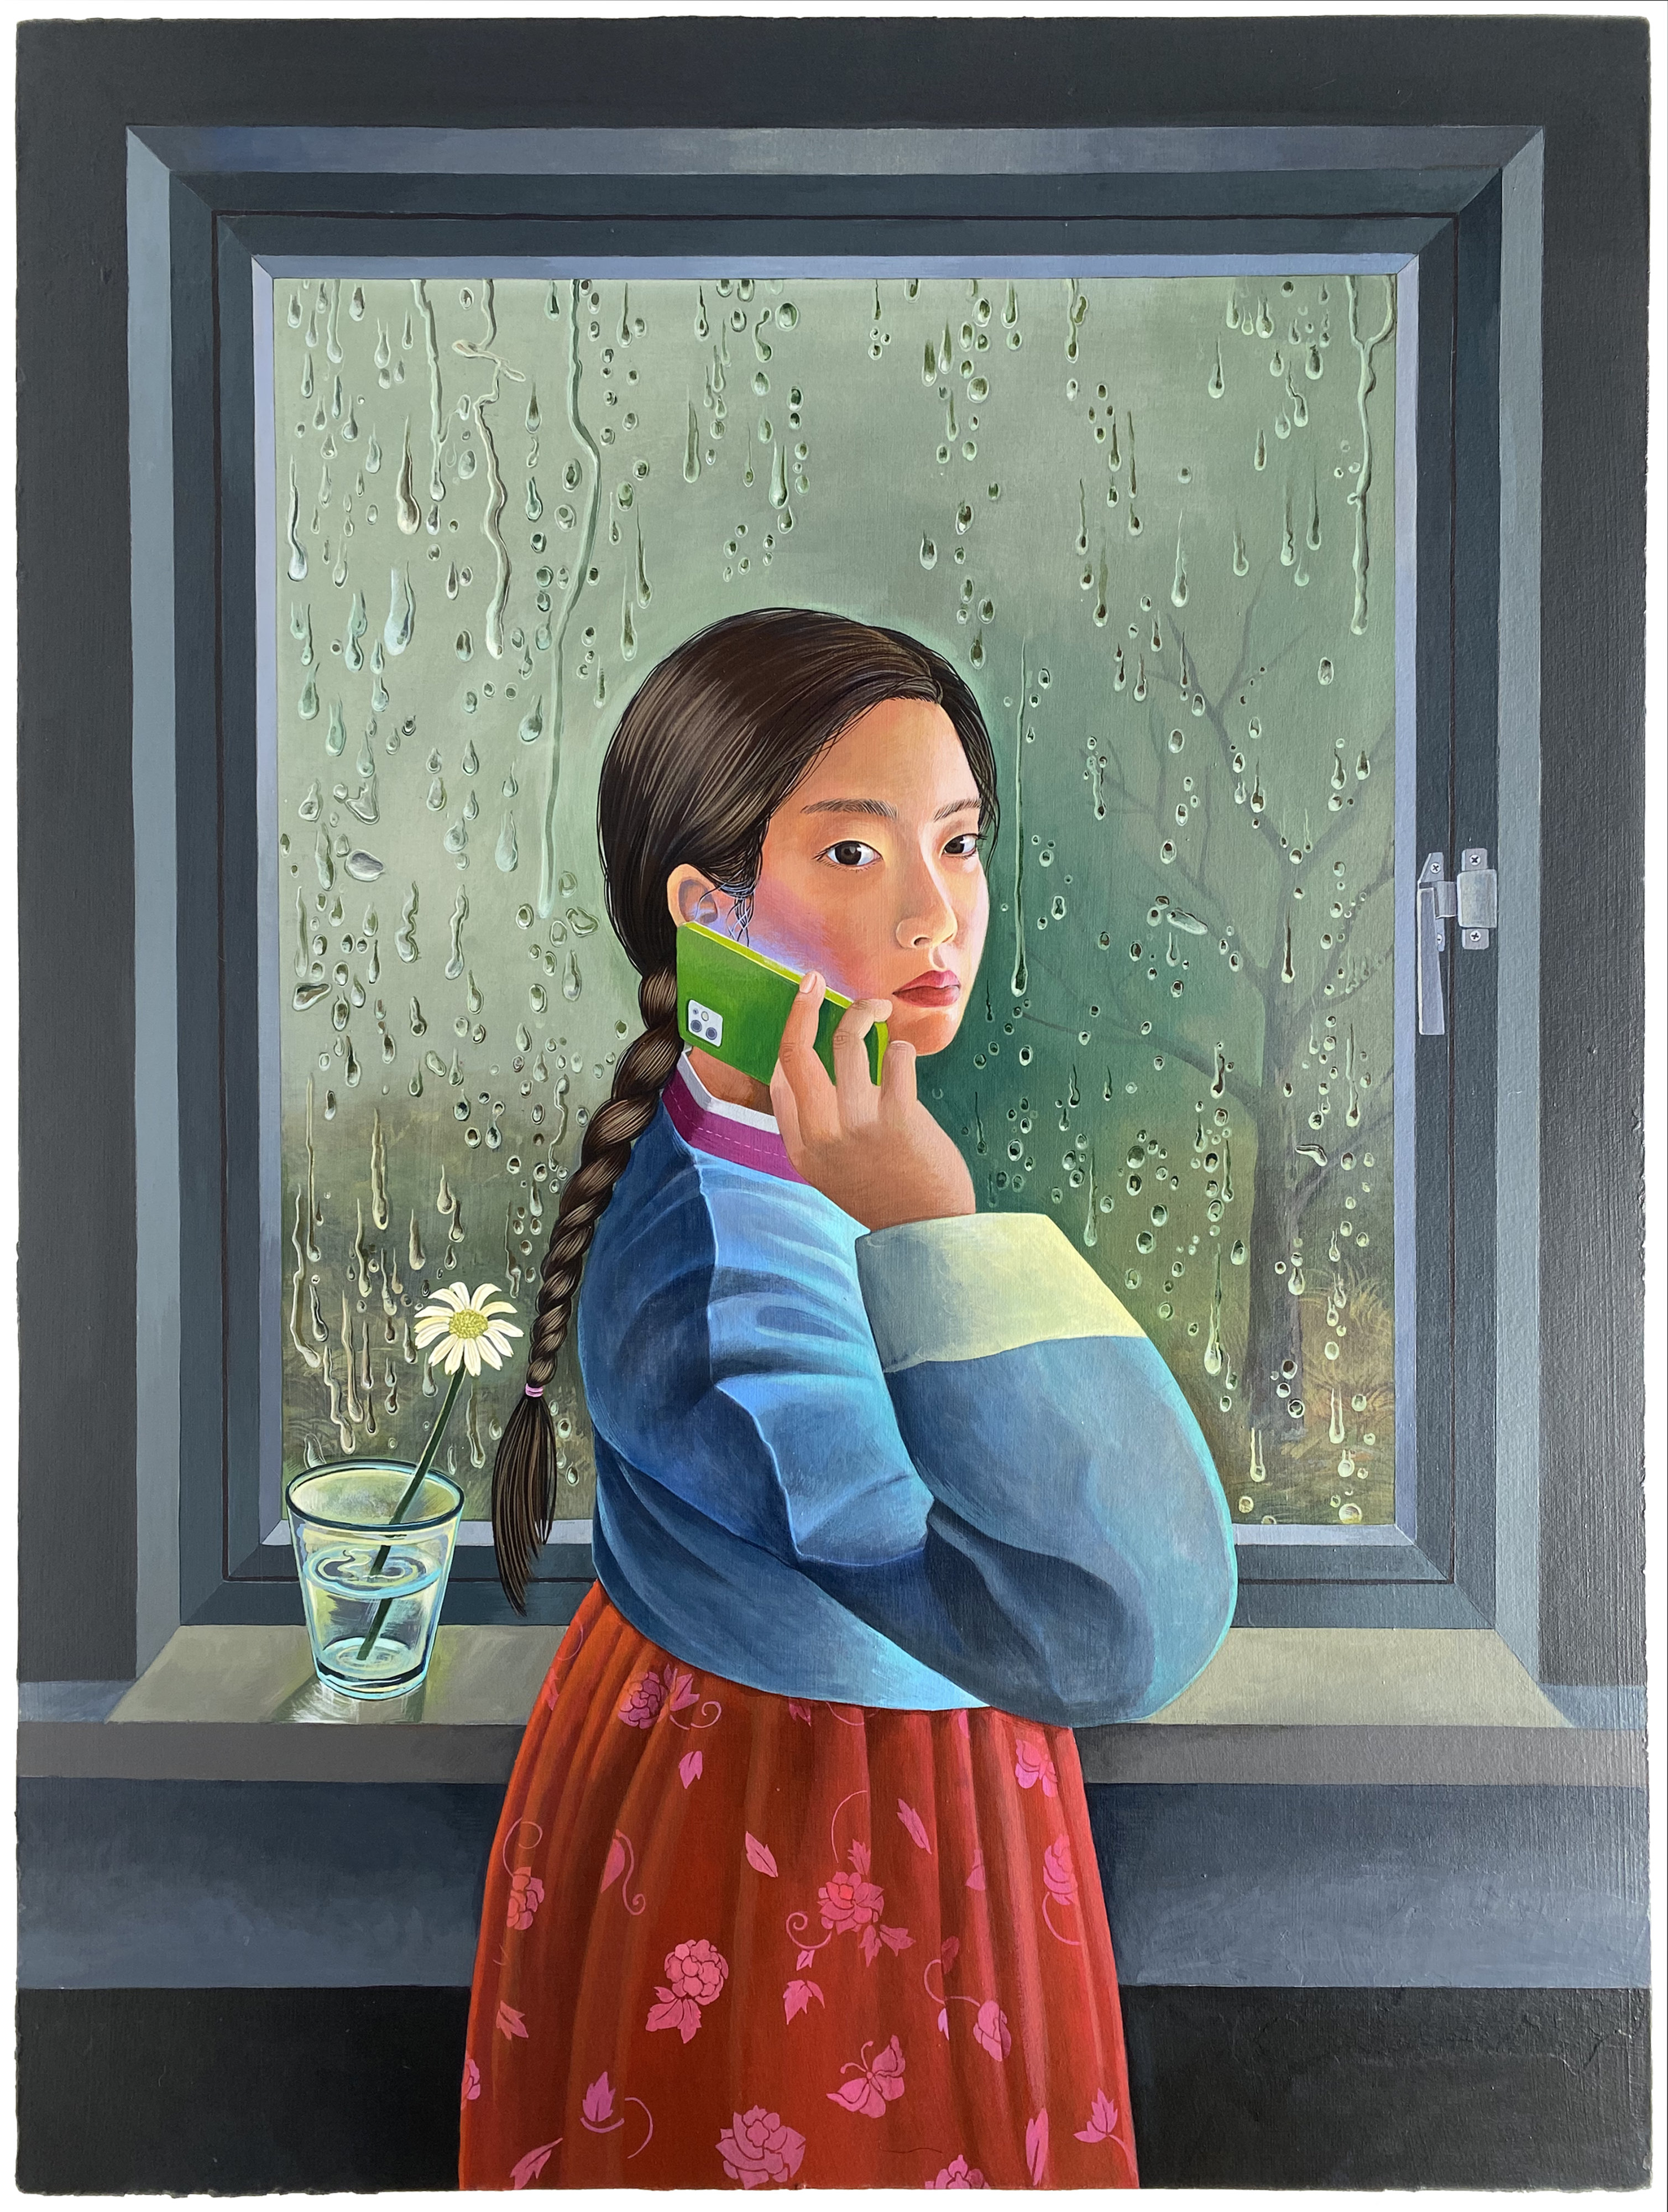 SALLY J. HAN - A Call, 2021 - Acrylic paint on paper mounded on wood panel 30 x 40 in 76.2 x 101.6 cm